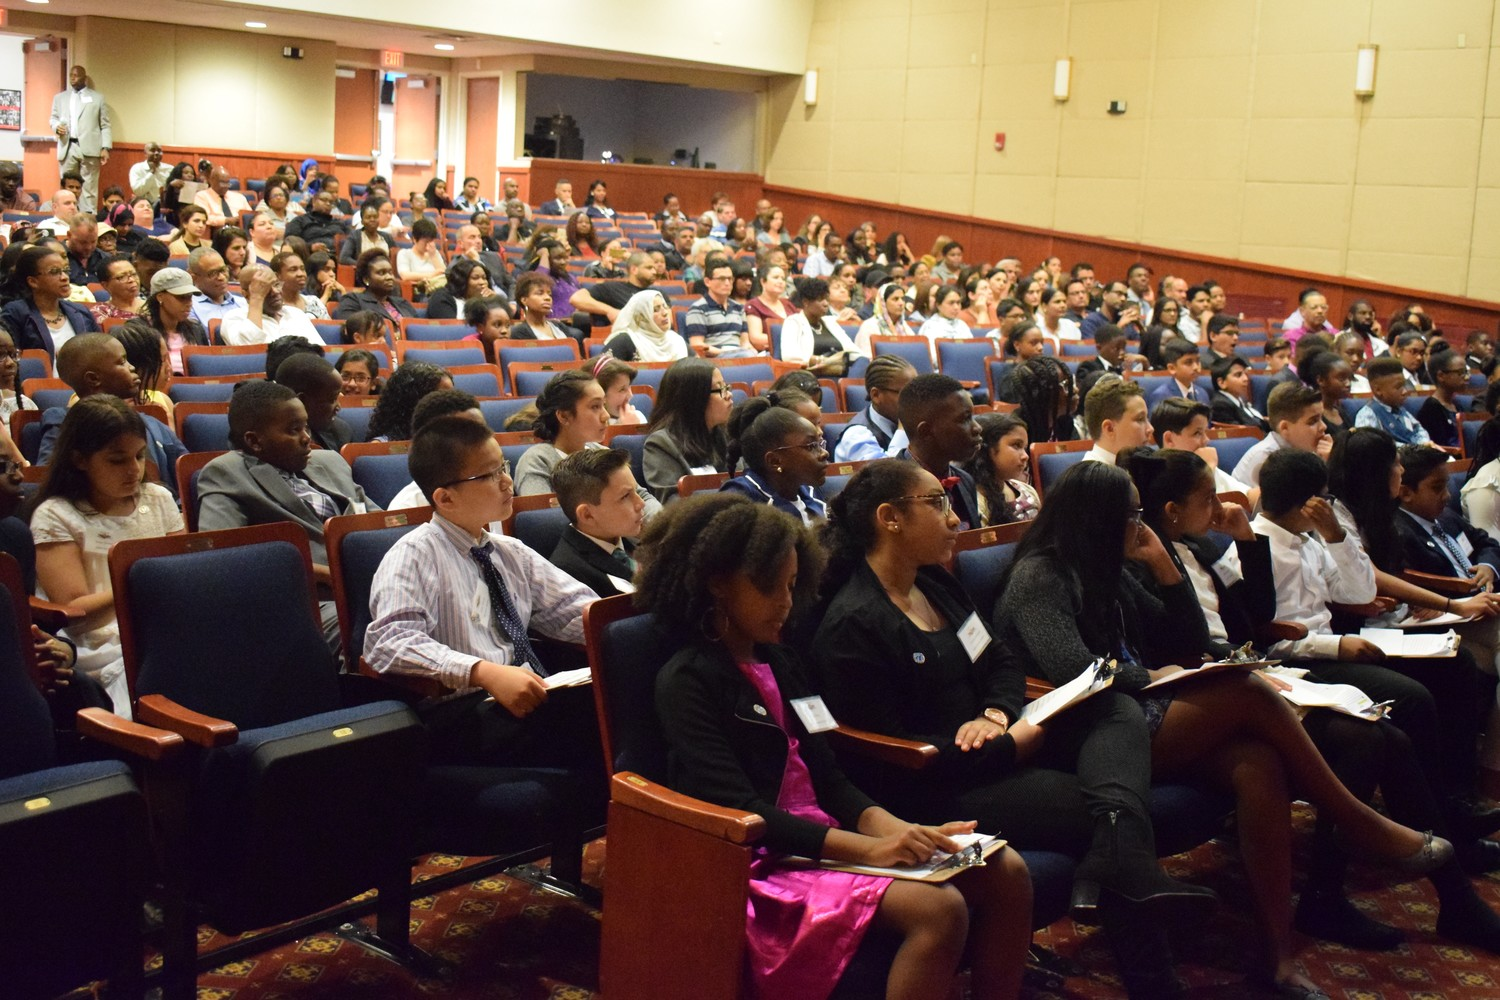 About a hundred students from the Elmont Free Union School District gathered inside the Elmont Memorial Library for the 13th anniversary of the LEE Model U.N. Conference.